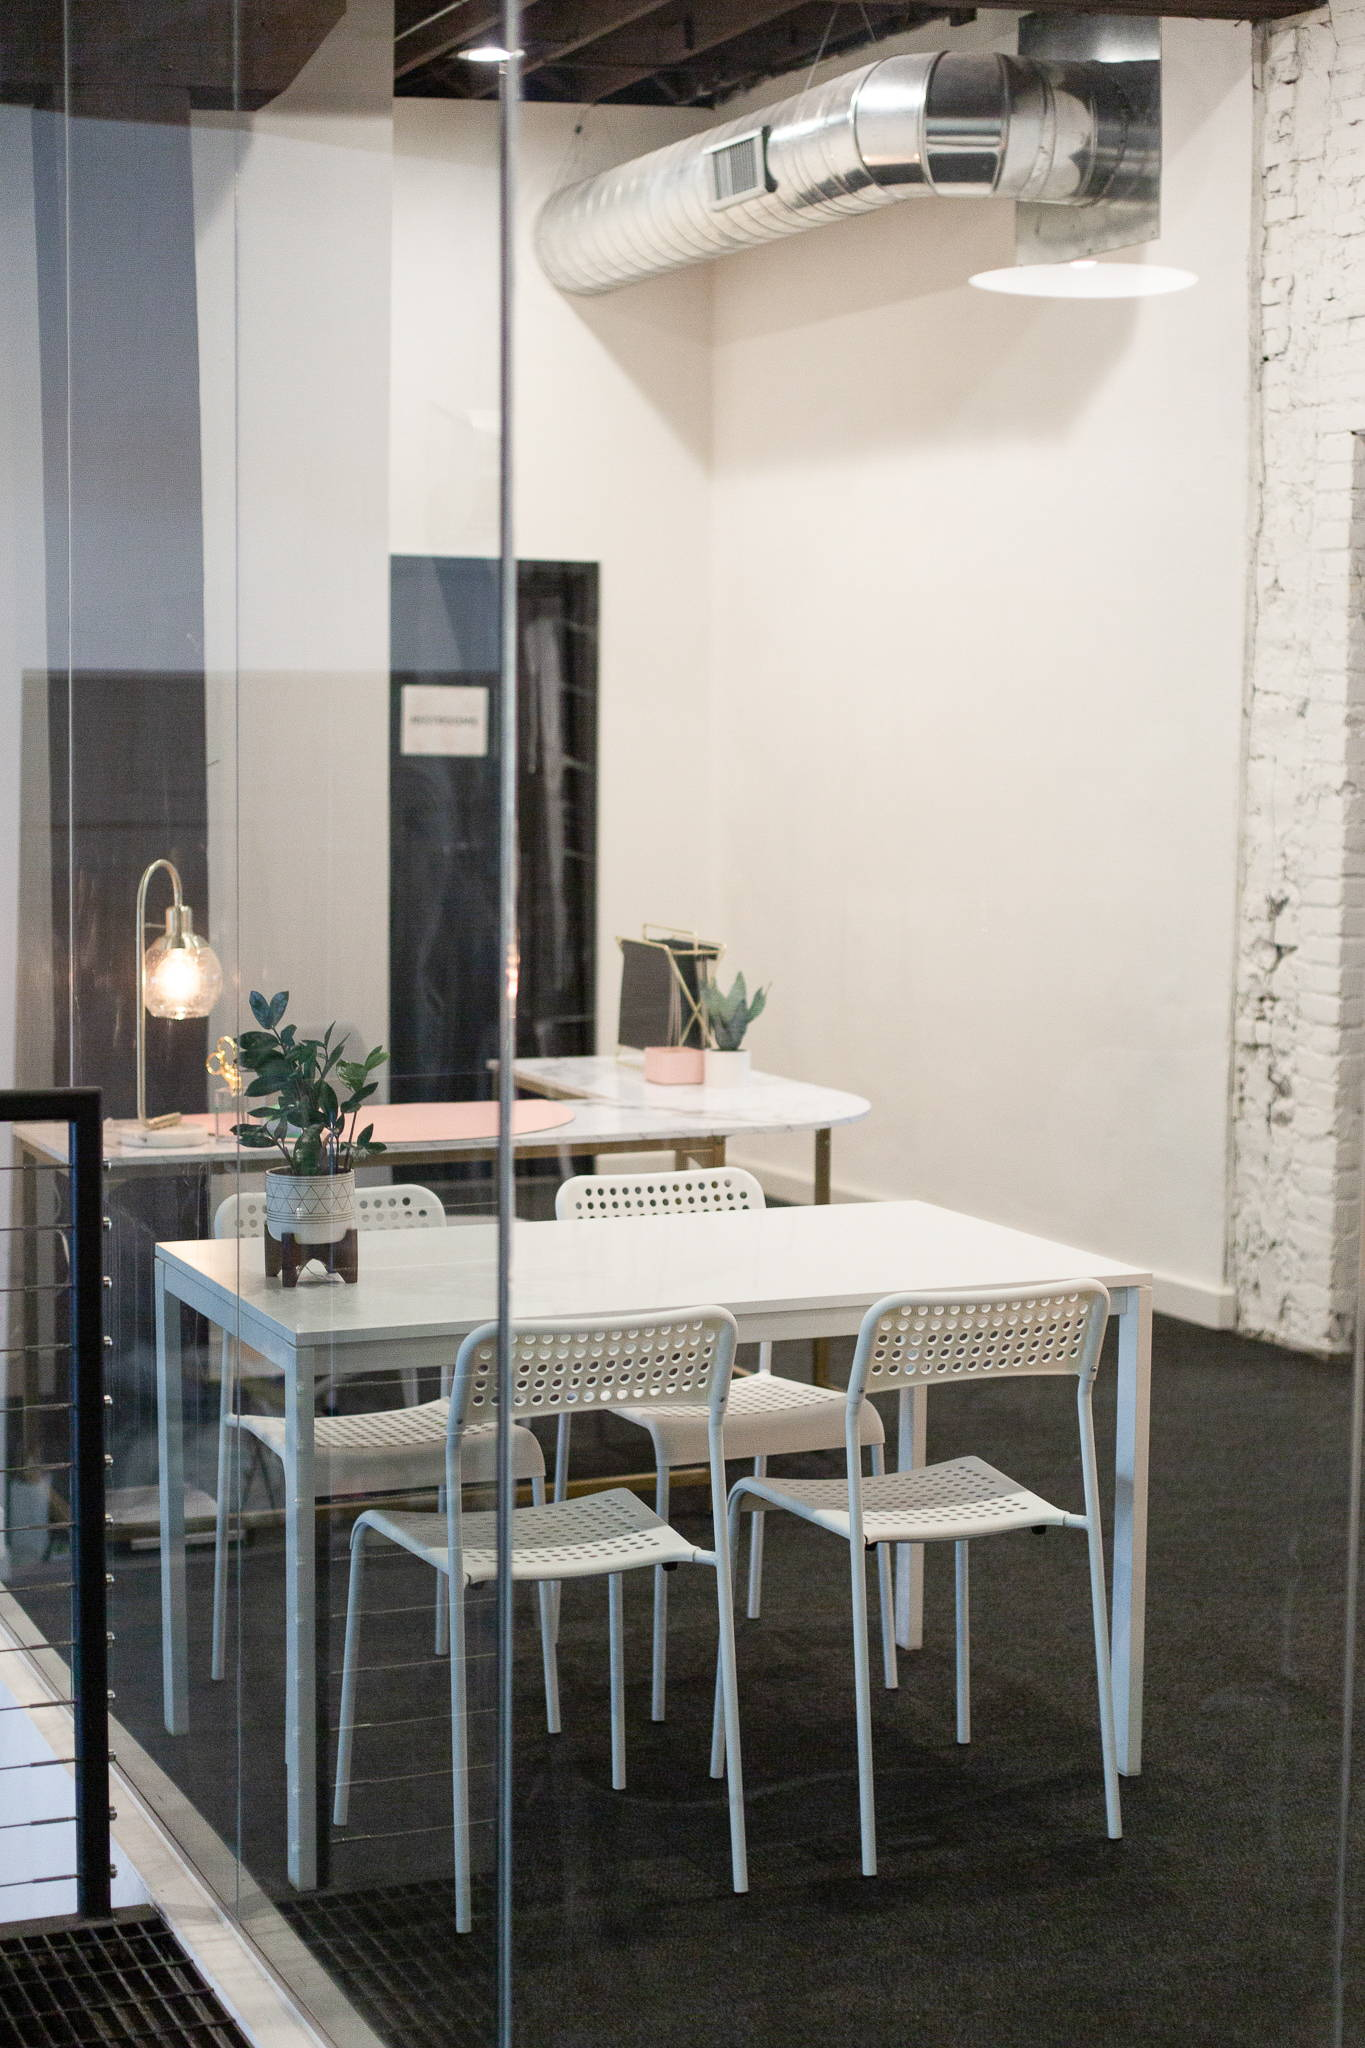 additional workspace and additions to private offices available